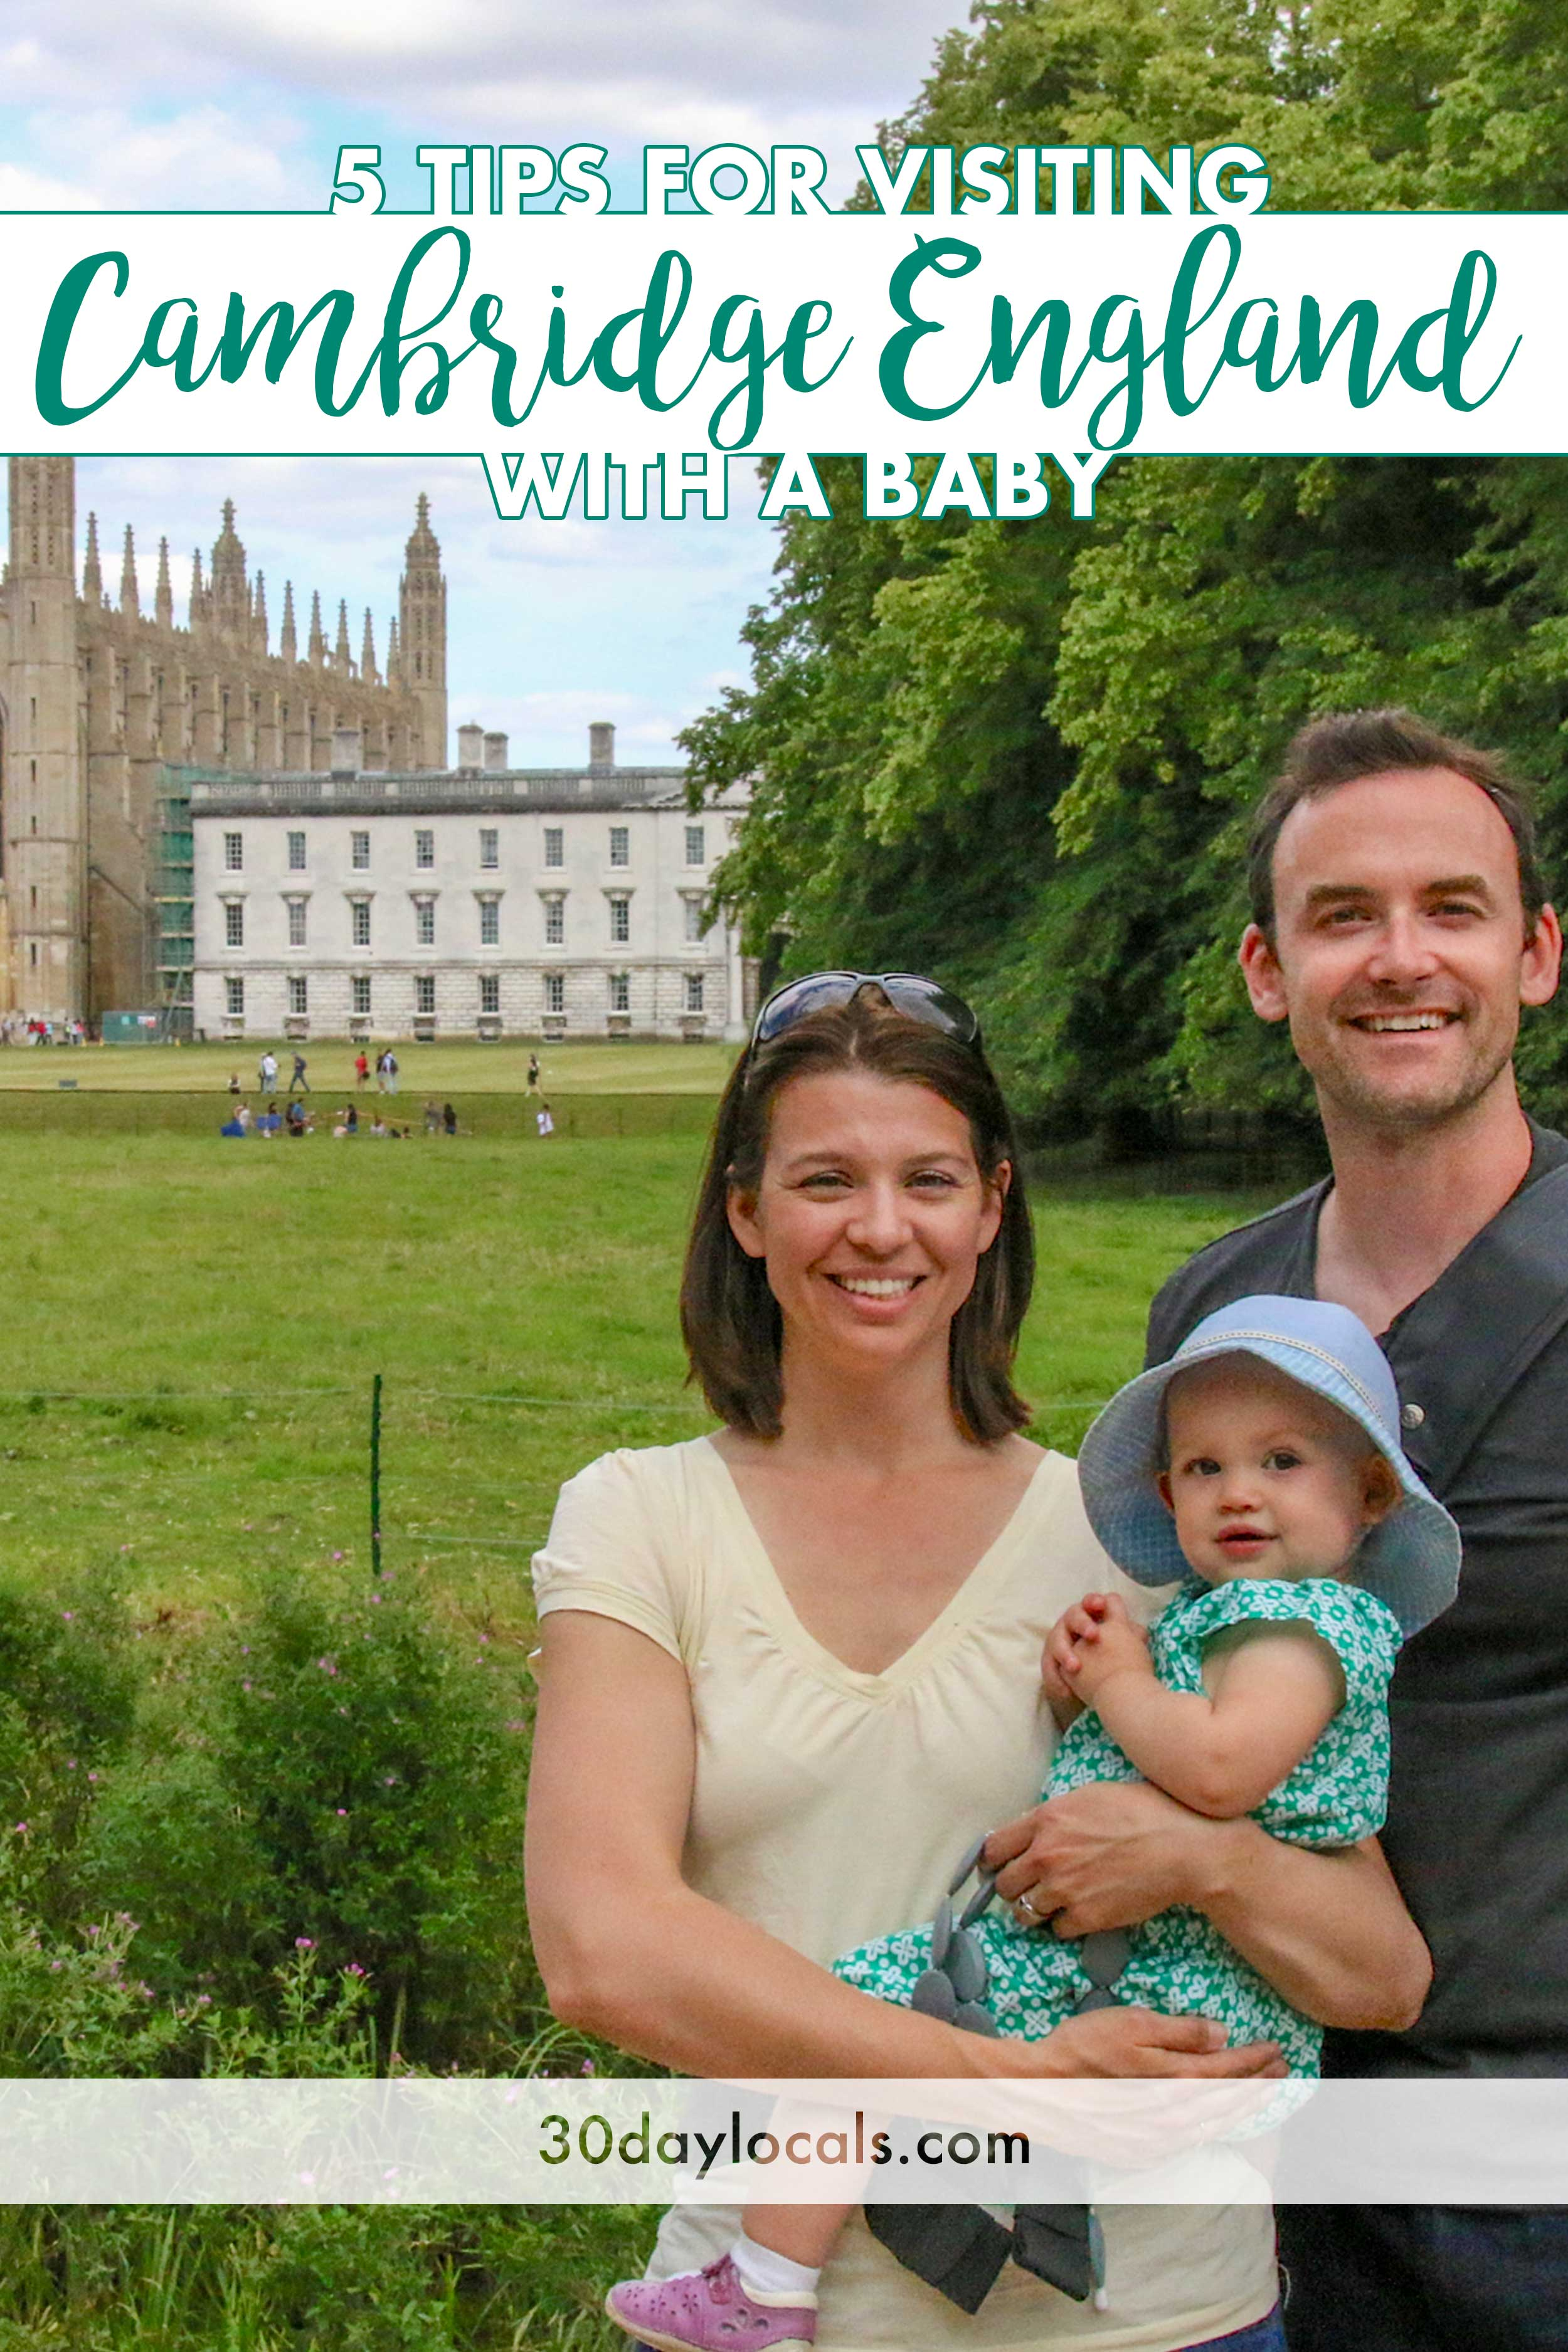 Visiting Cambridge? These top 5 tips will ensure a great day trip with a baby.